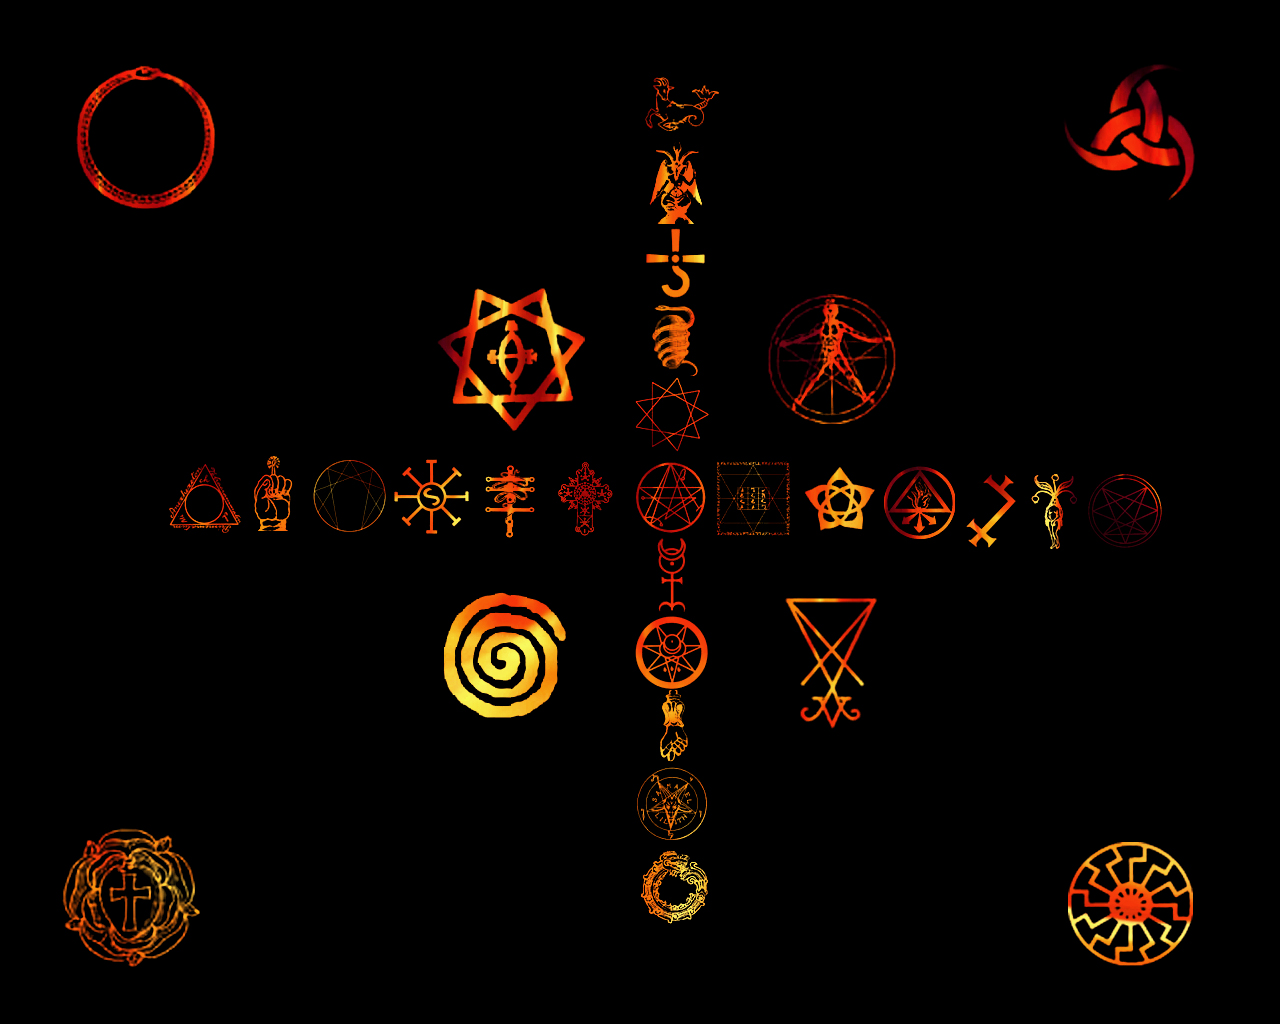 Occult Wallpaper by PariahRising 1280x1024